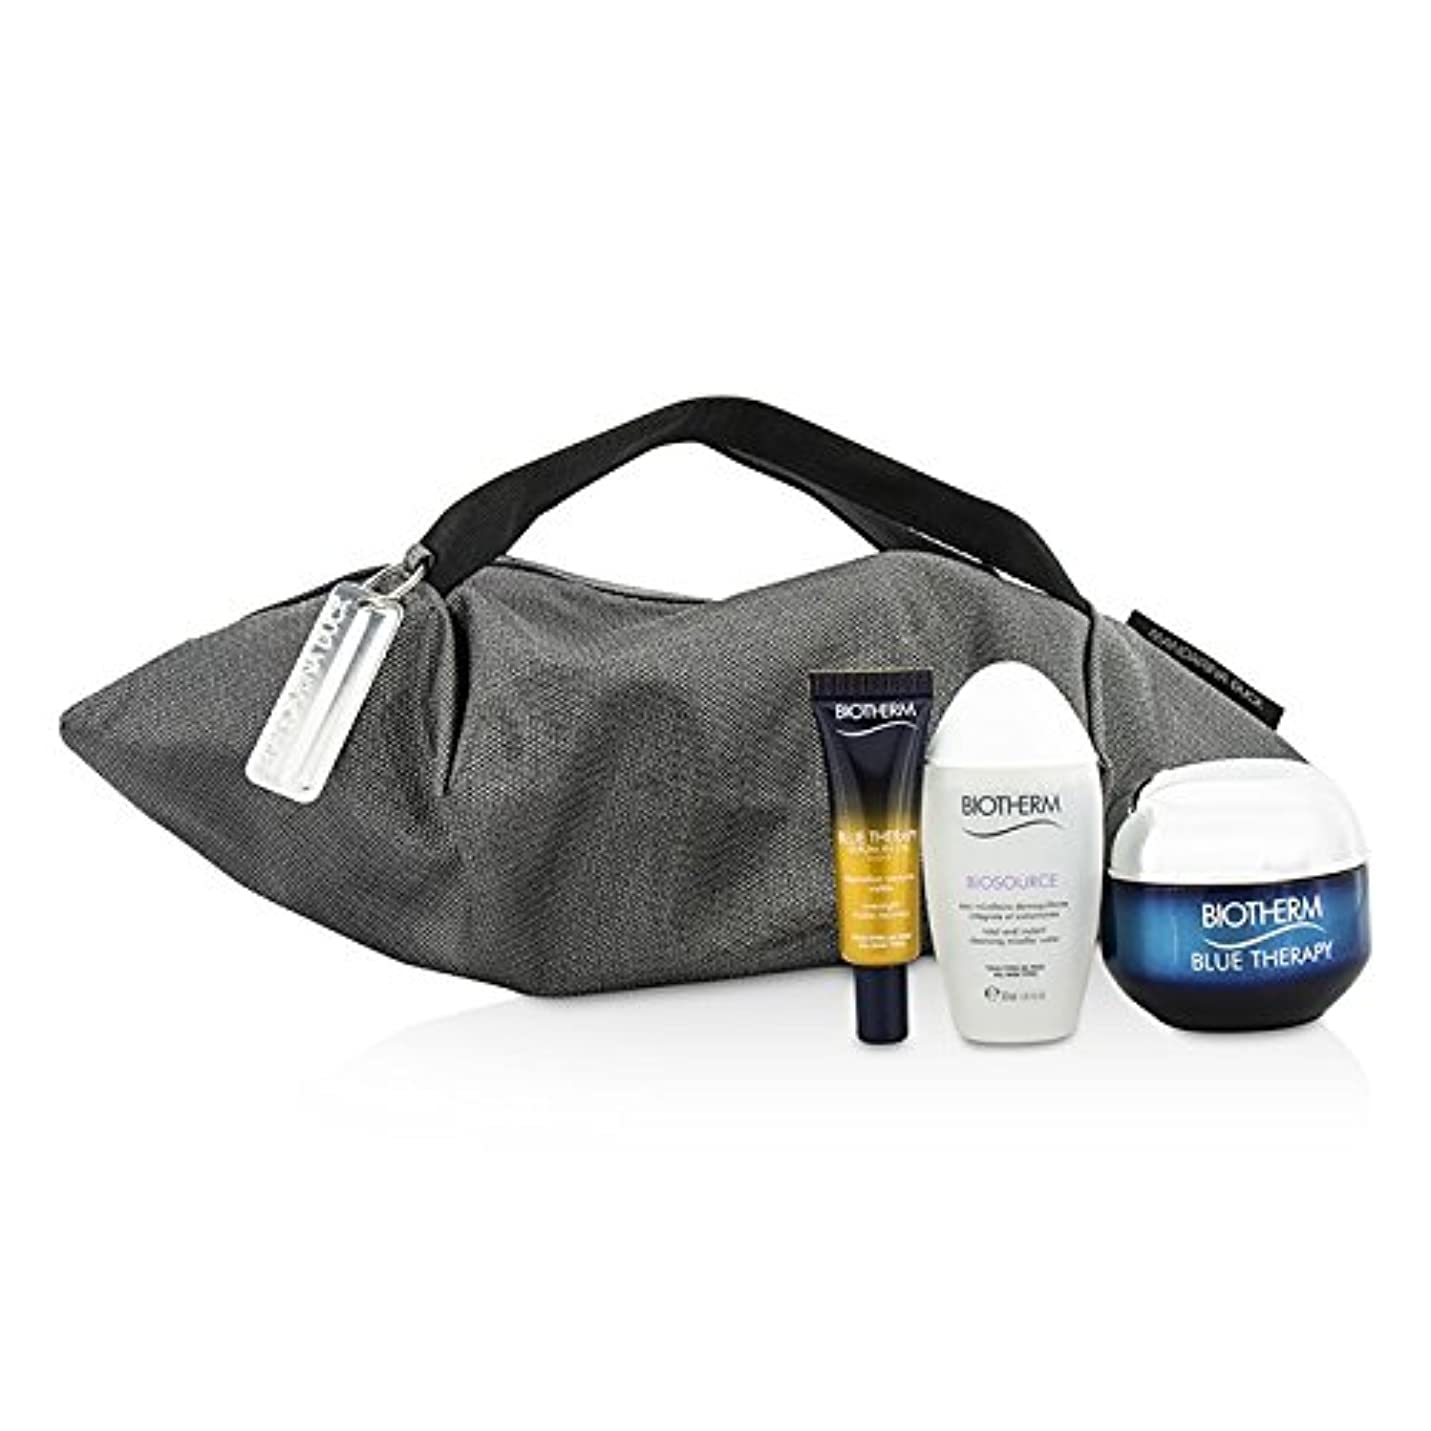 効果エミュレートする治療ビオテルム Blue Therapy X Mandarina Duck Coffret: Cream SPF15 N/C 50ml + Serum-In-Oil 10ml + Cleansing Water 30ml +...